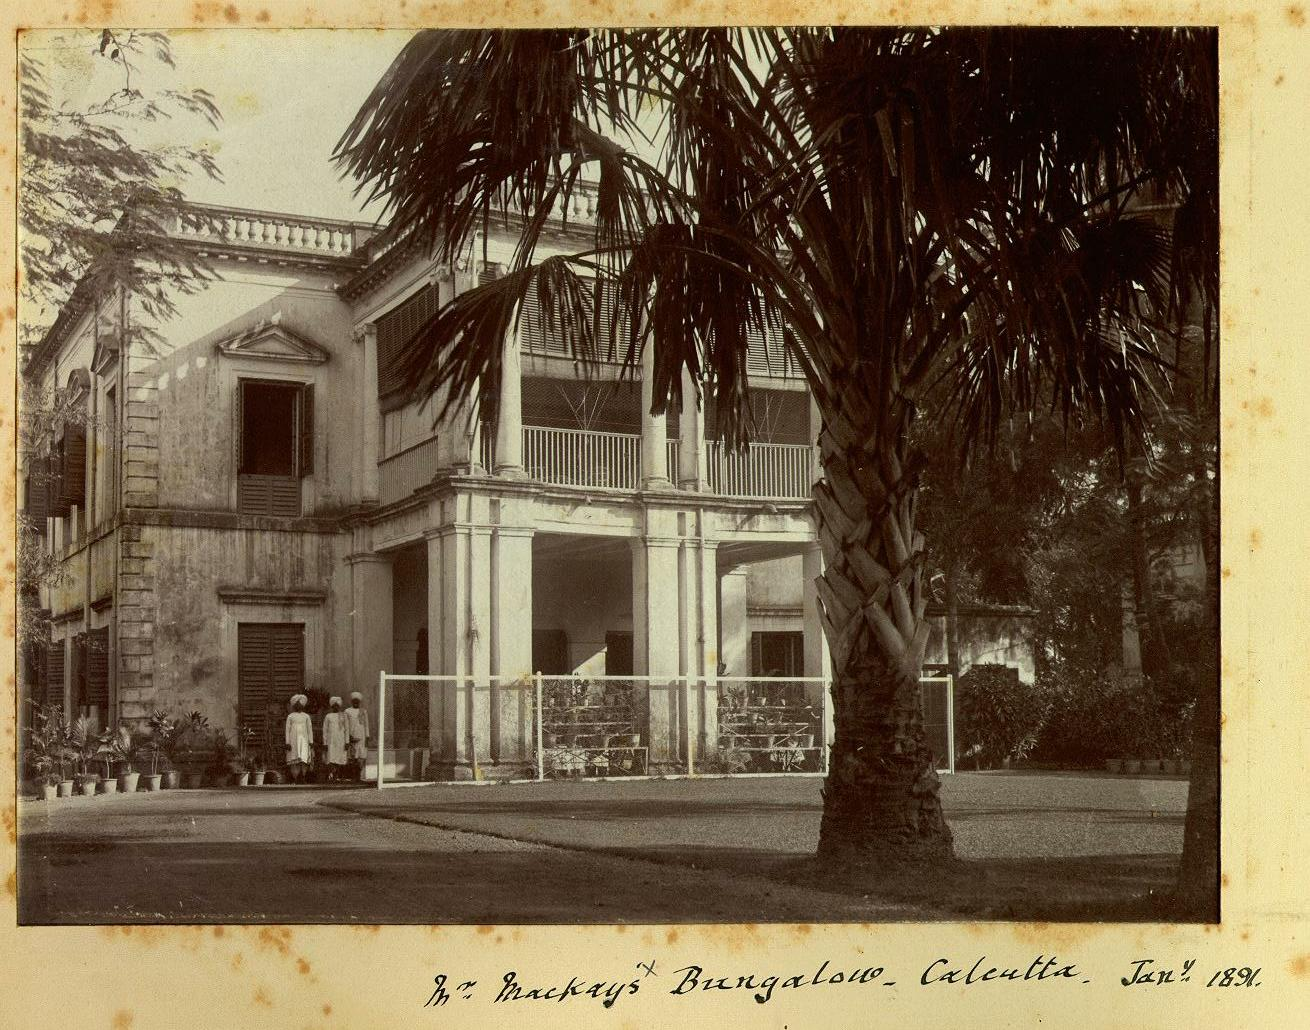 Mr Mackay's bungalow, Calcutta, Jan. 1891